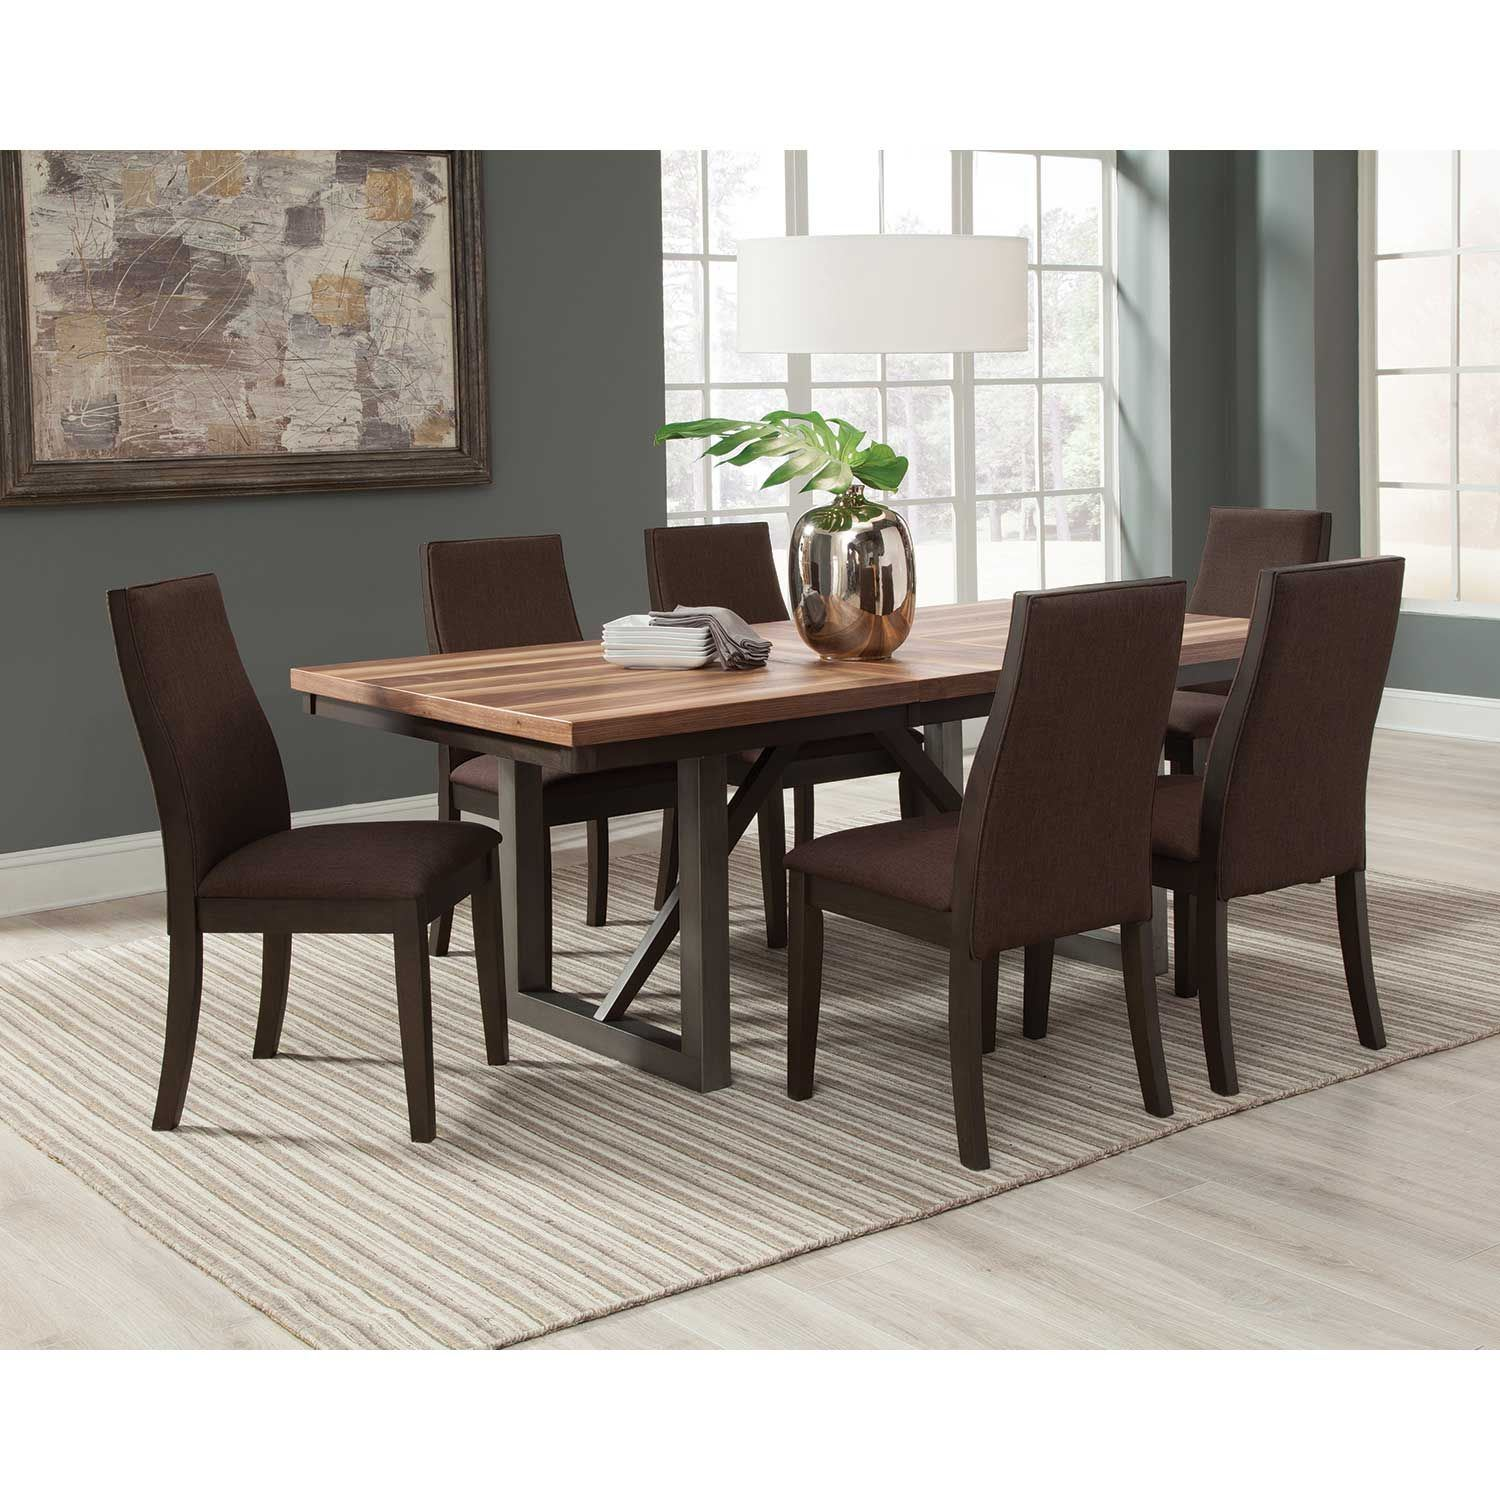 ... Picture Of Spring Creek Dining Table ...